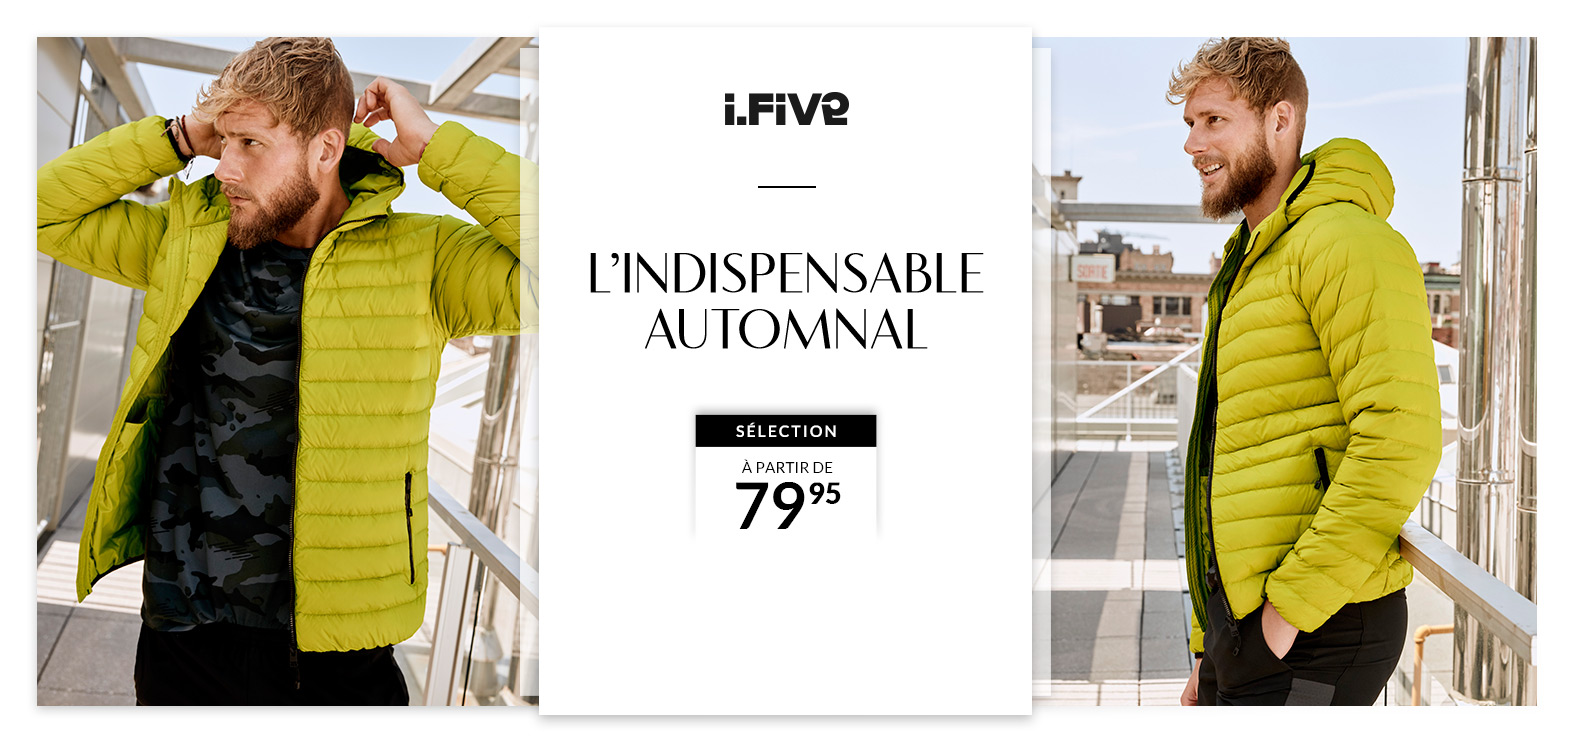 A18-BGL-HOMME-IFIV5-INSDIPENSABLE-AUTOMNAL-1.psd